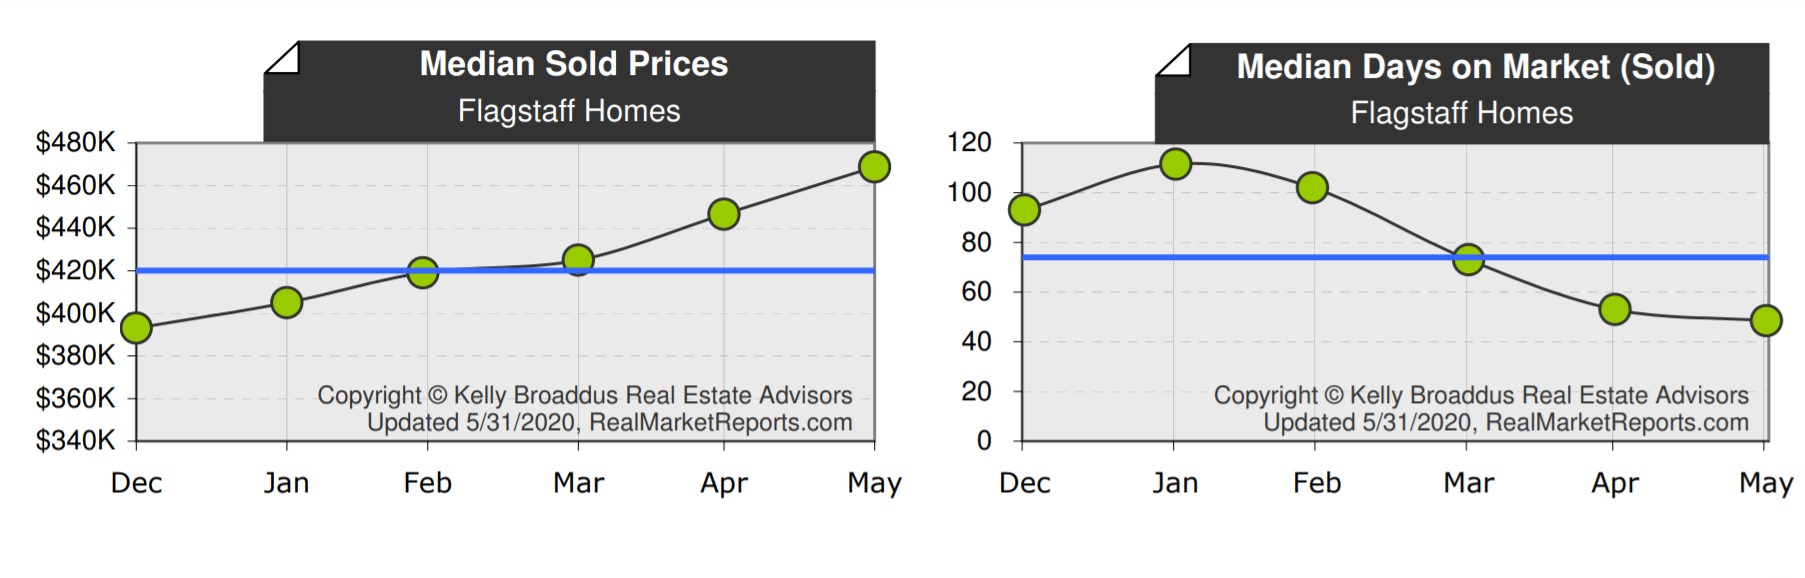 Flagstaff Median Home Price & DOM May 2020